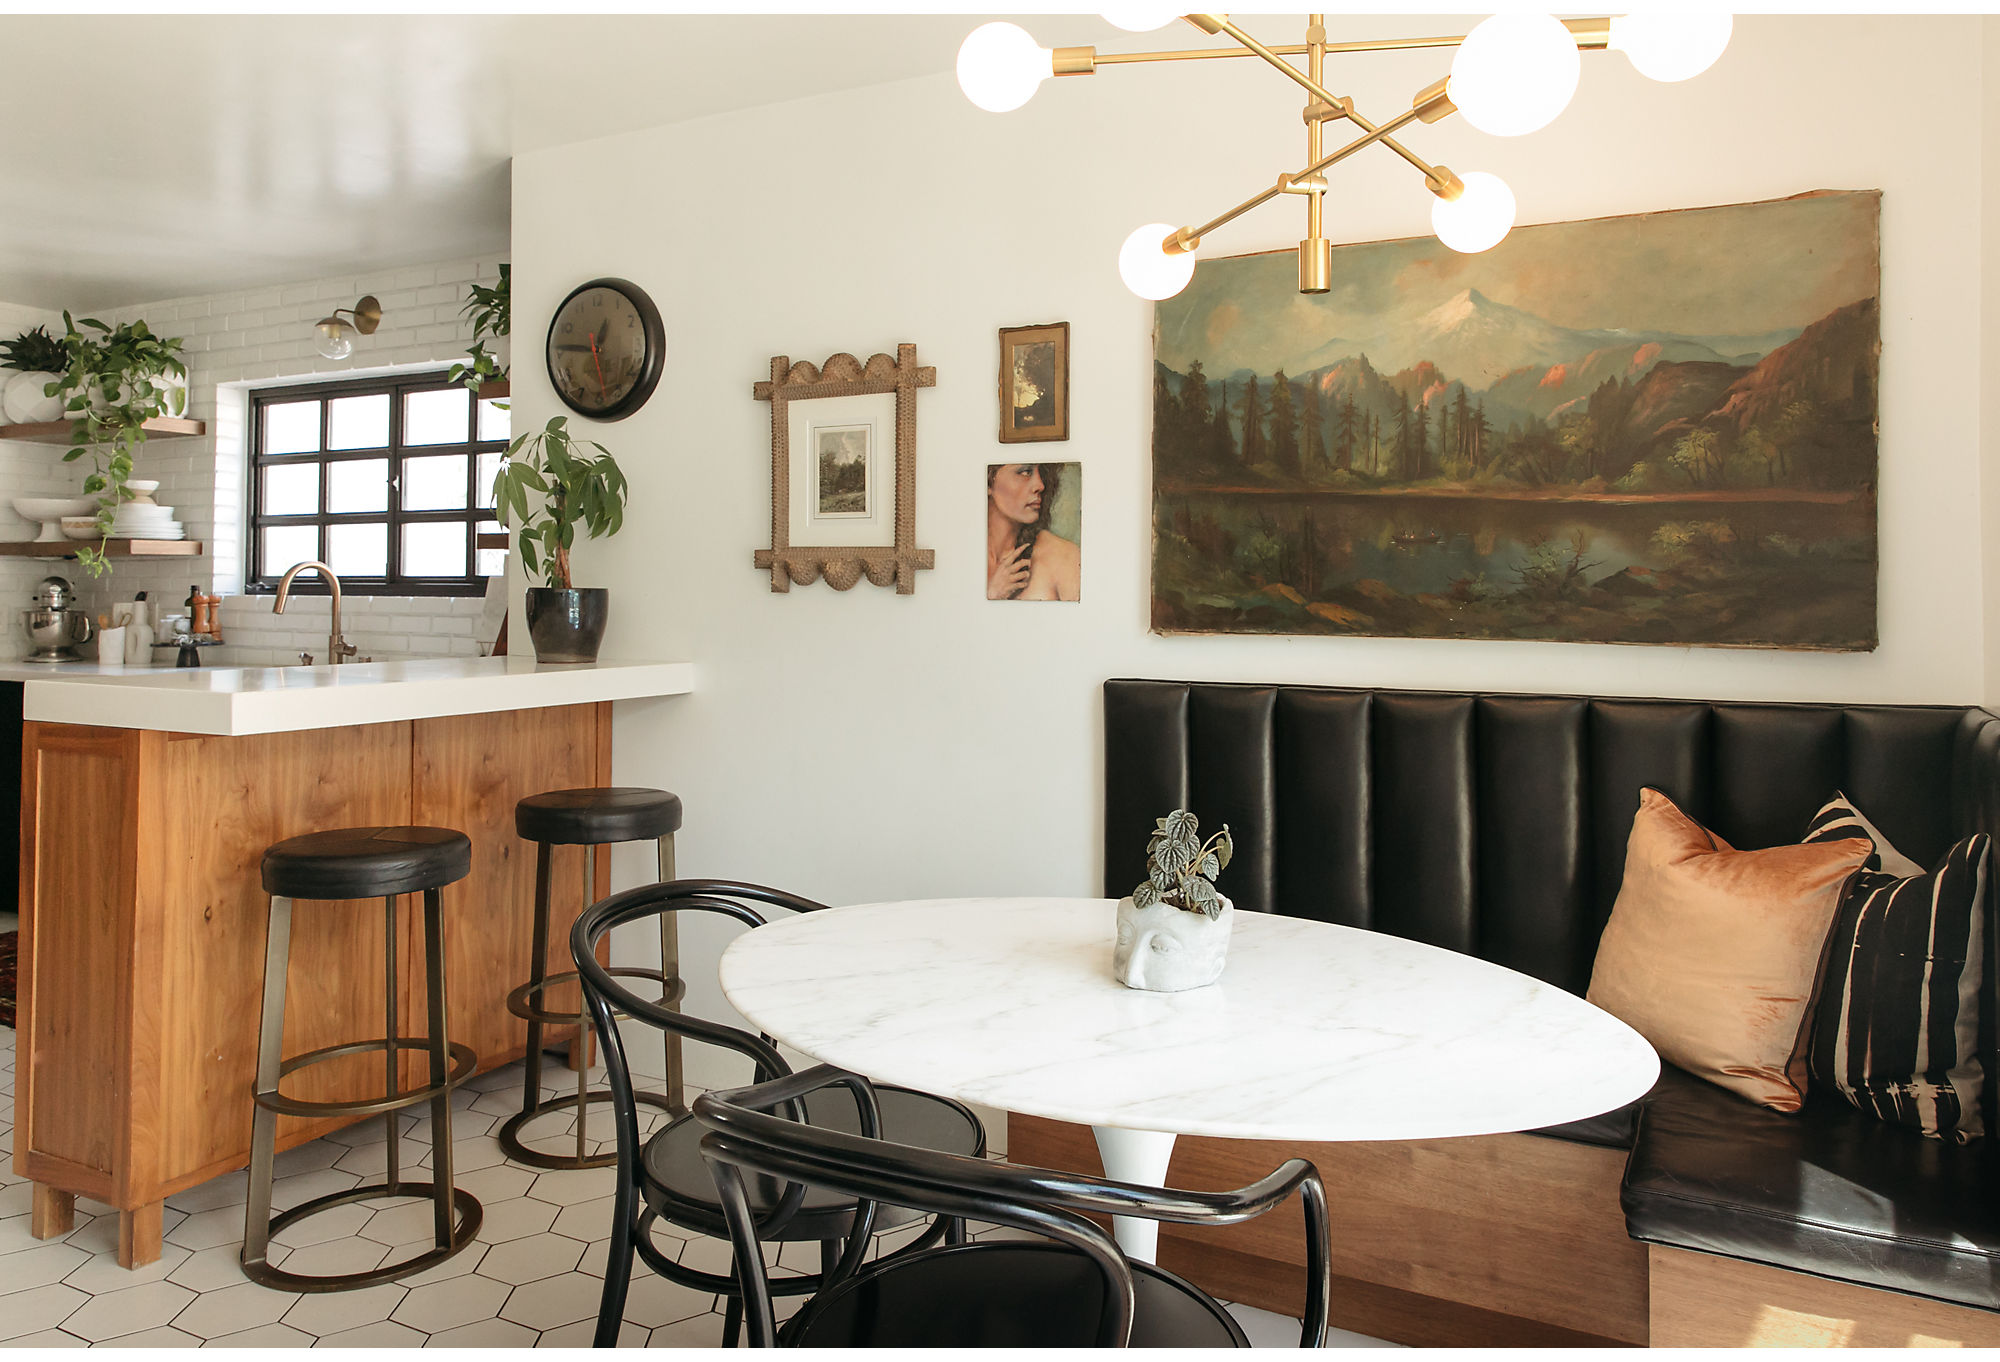 """Jessie purchased the landscape art in her breakfast nook from a vintage dealer turned friend. """"I talked him into selling it to me. It was one of his favorites and he didn't want to let it go,"""" she says. She paired it with a leather channel-back booth and a Sputnik-style light to give it a mod vibe. Velvet pillows add an extra layer of glam."""